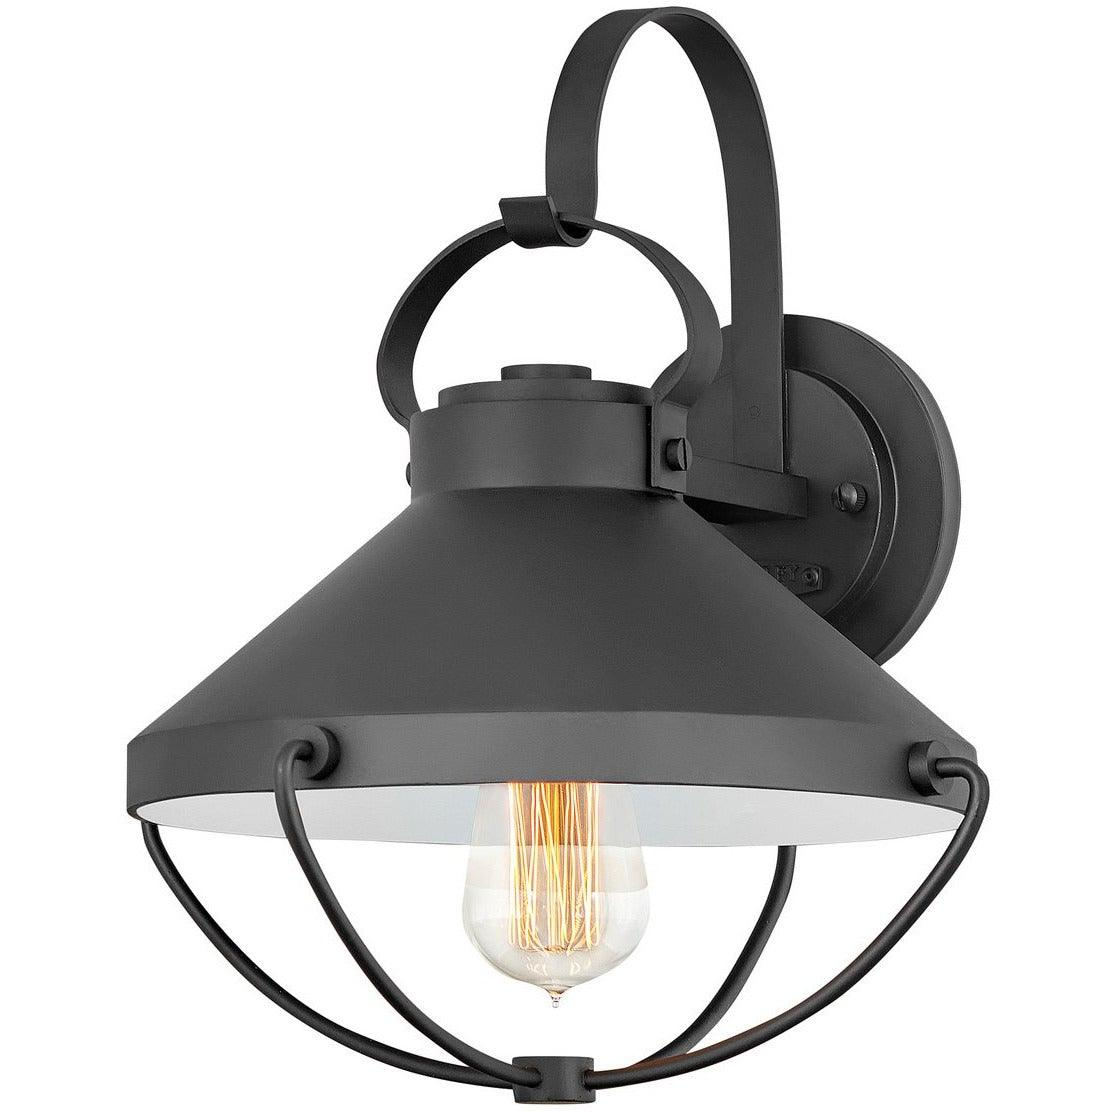 Hinkley Canada - 2694BK - One Light Outdoor Lantern - Crew - Black